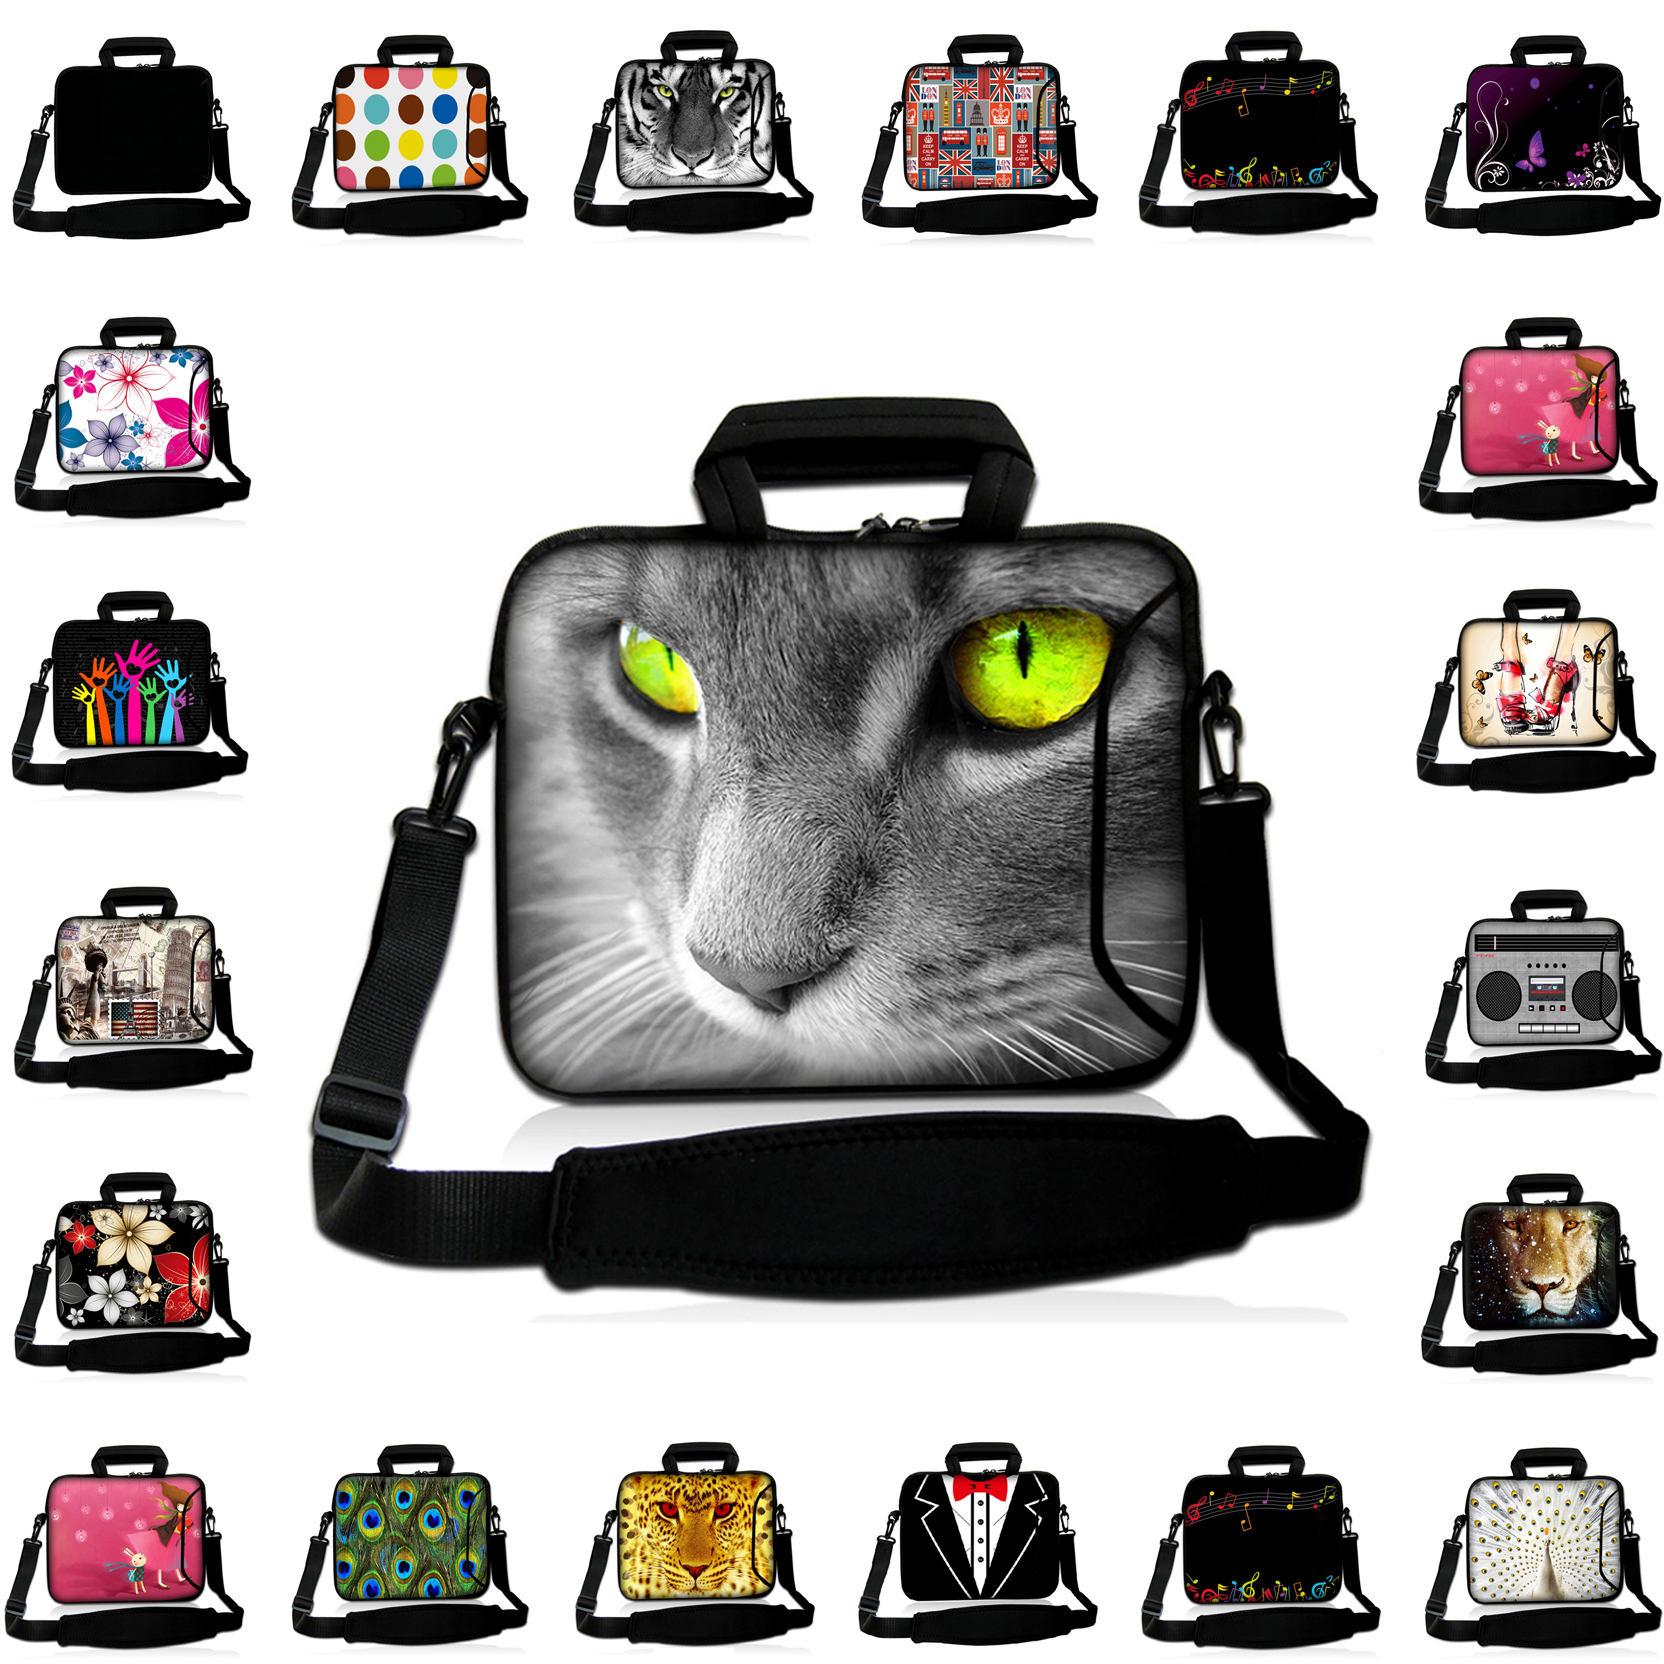 Double Zippers Design 14 14.4 14.1 14.2 inch Shoulder Strap Messenger Computer Laptop Bags For Acer Toshiba Sleeve Laptop Cases<br><br>Aliexpress